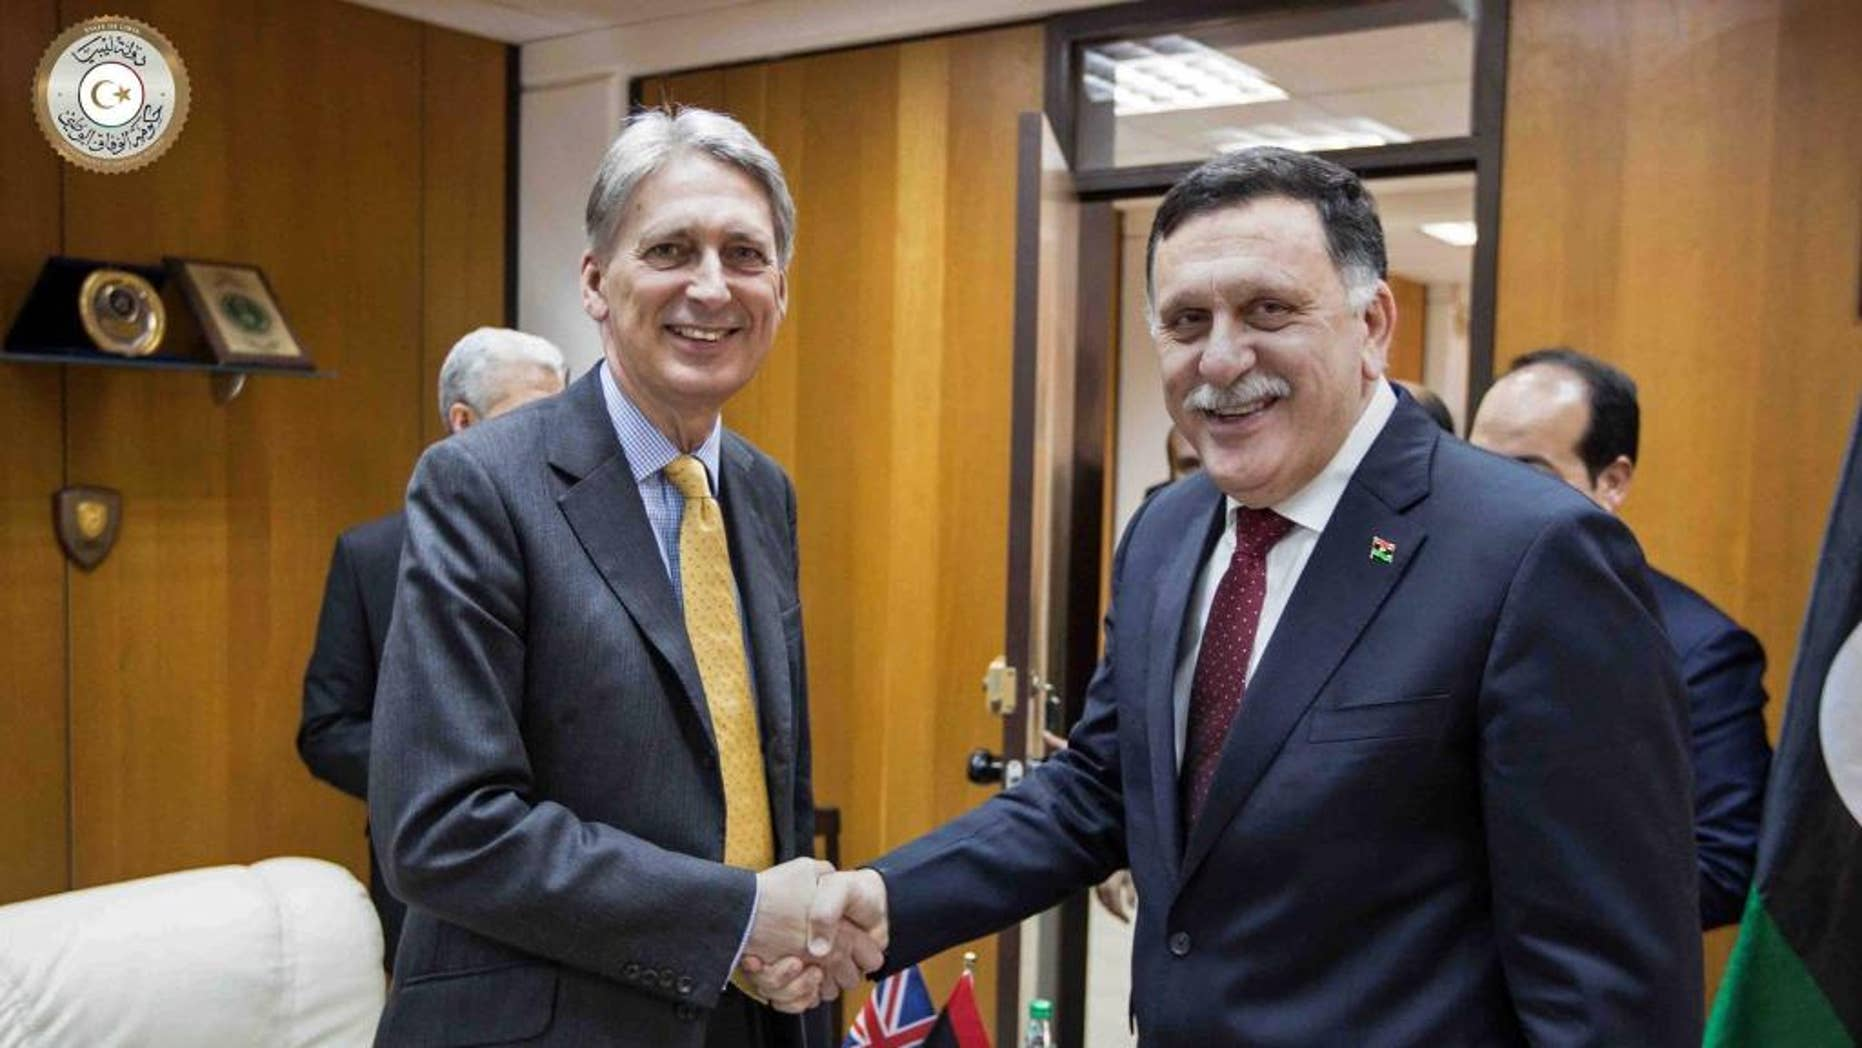 In this photo provided by the Libyan Government of National Accord, Libyan prime minister-designate Fayez Serraj , right and British Foreign Secretary Philip Hammond shake hands for photographers in Tripoli, Libya, Monday, April 18, 2016. Western nations hope the U.N.-backed government, known as the Government of National Accord or the GNA, can unite the country in order to combat an increasingly powerful Islamic State affiliate. (Libyan Government of National Accord via AP)